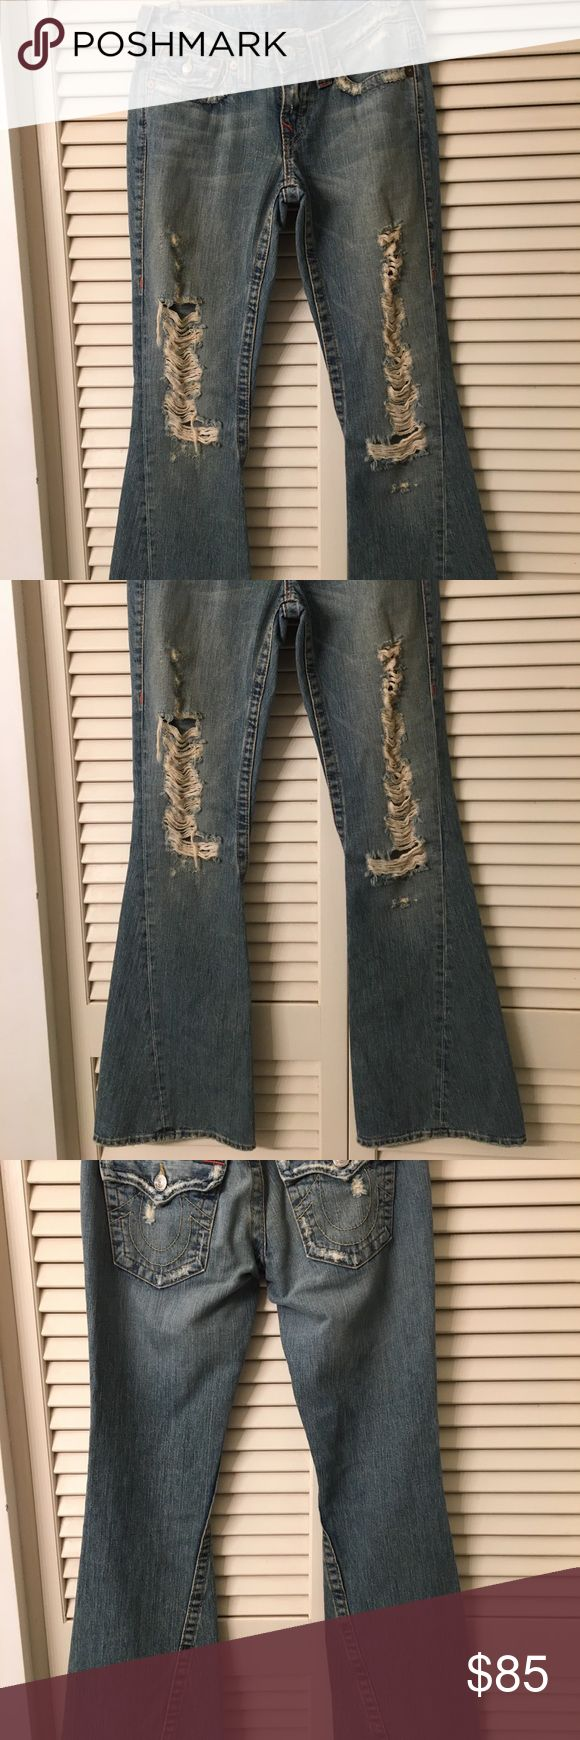 True Religion Distressed Bell Cut These will be your favorite jeans ever. In perfect condition. Like new. Cut number 602887 Style number 04-503 Amazing price for these babies! True Religion Jeans Flare & Wide Leg